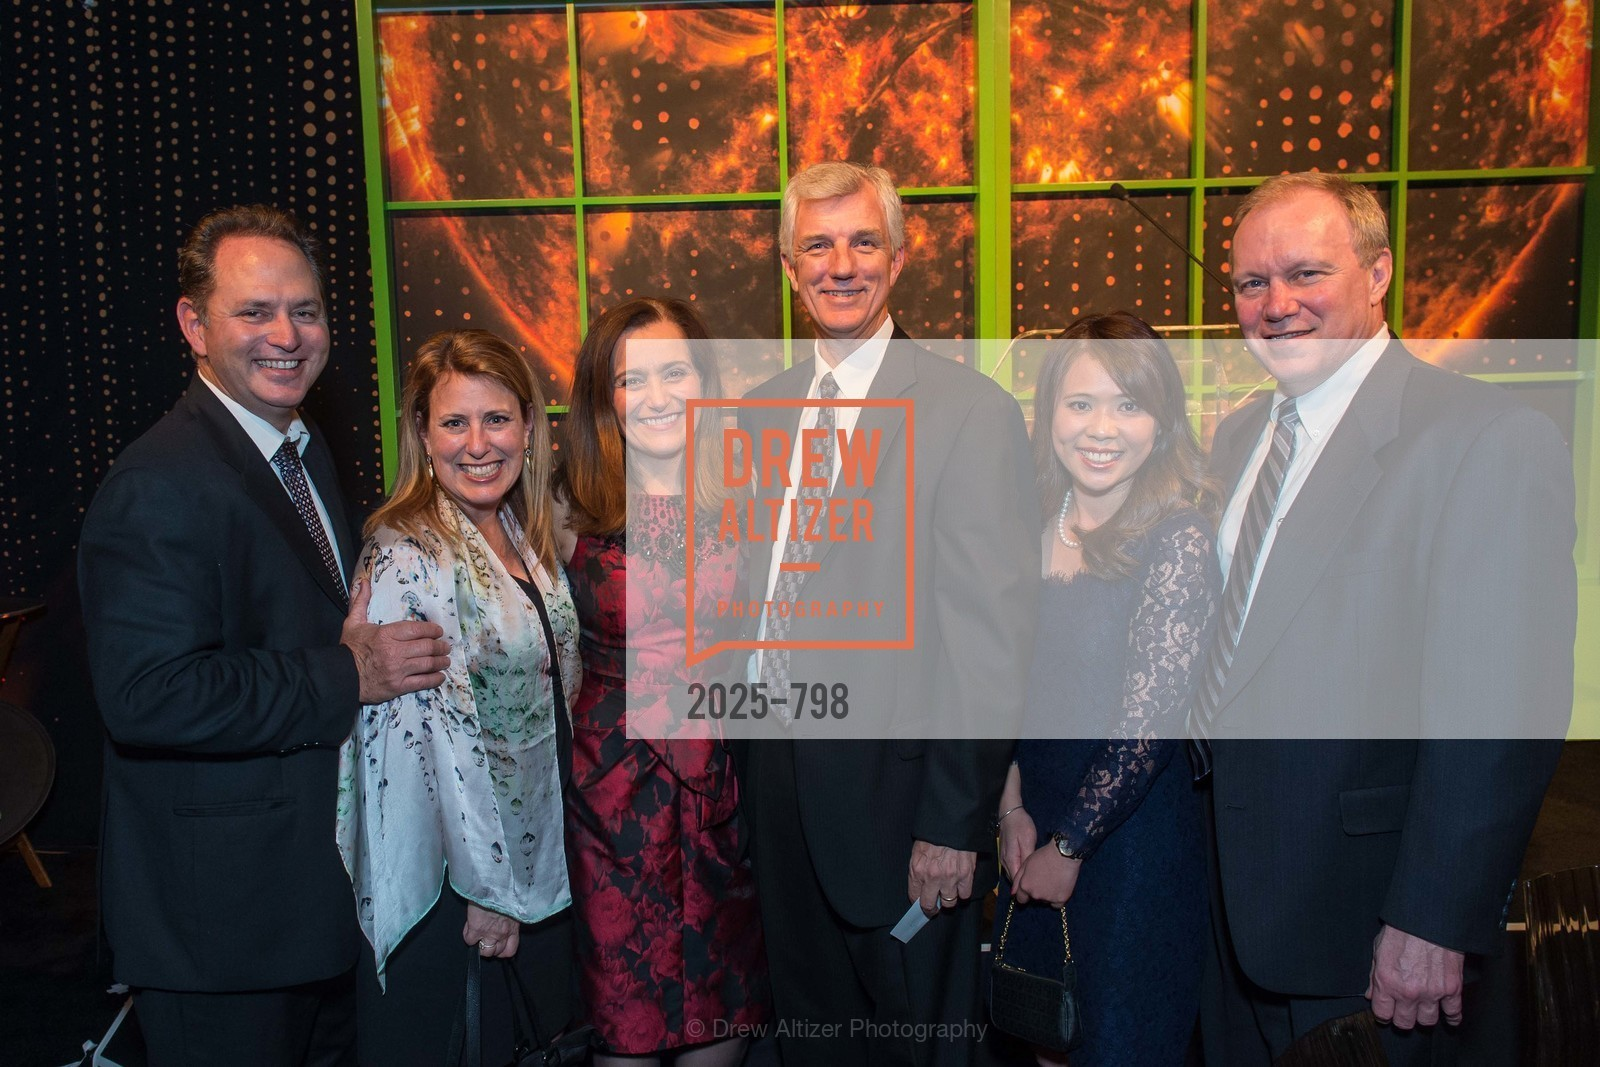 Stacia Williams, Jay Williams, Phoebe Leong, Bill Arndt, CALIFORNIA ACADEMY OF SCIENCES - Big Bang Gala 2015, US, April 23rd, 2015,Drew Altizer, Drew Altizer Photography, full-service agency, private events, San Francisco photographer, photographer california